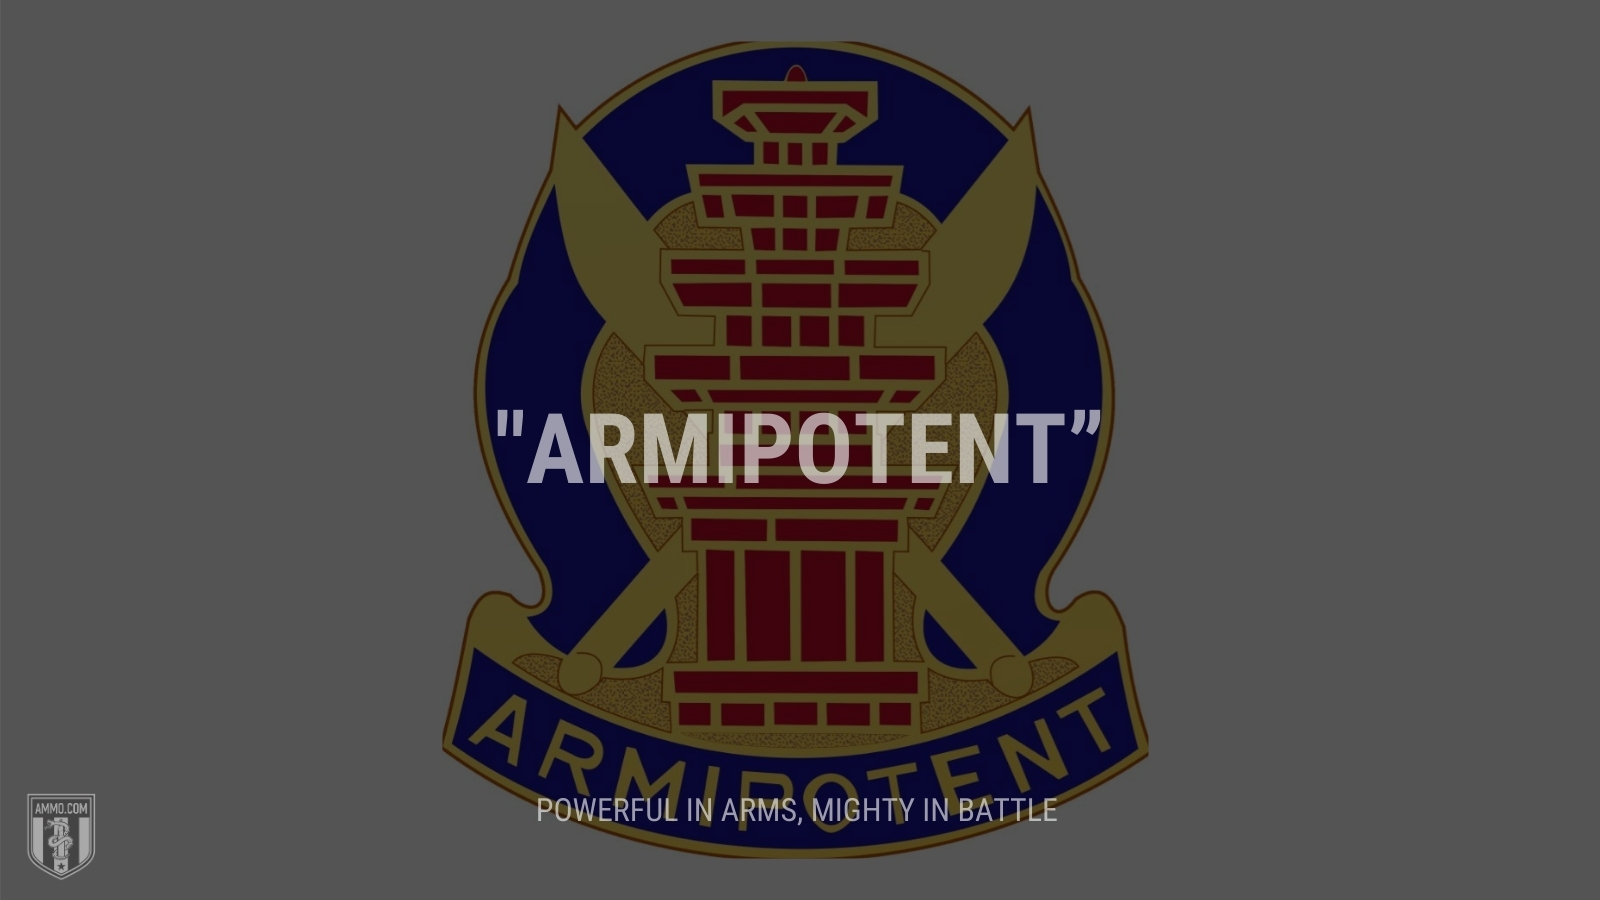 """""""Armipotent"""" - Powerful in arms, mighty in battle"""